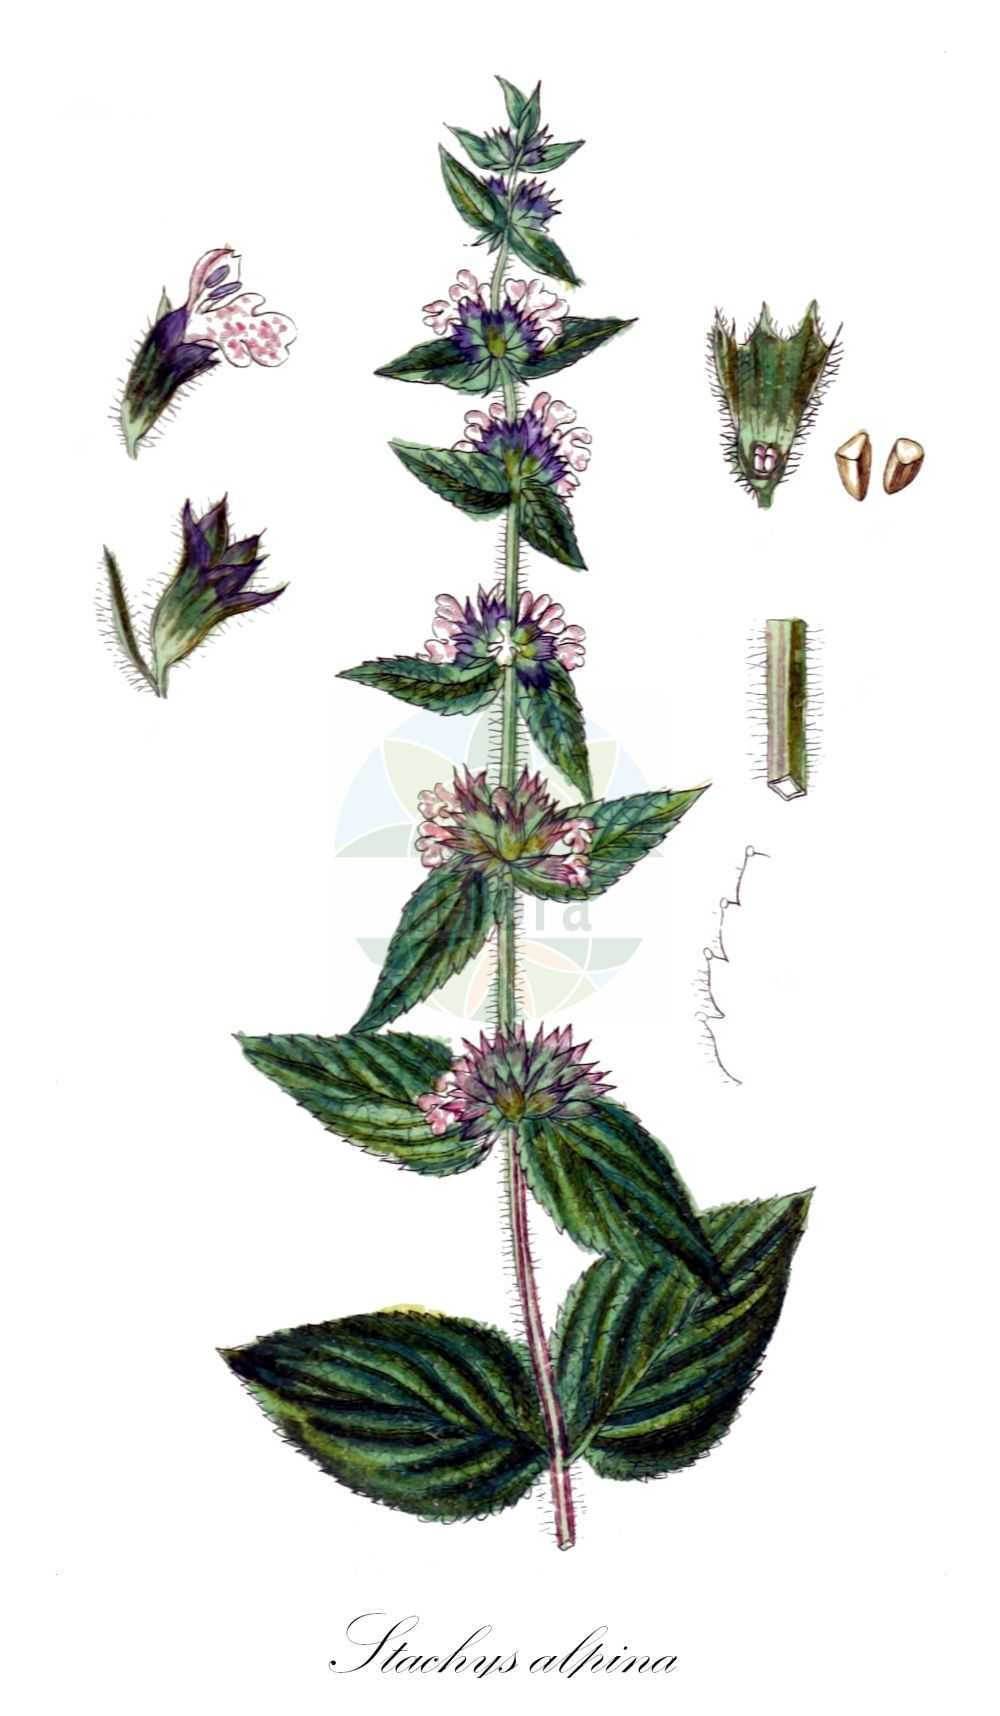 Historische Abbildung von Stachys alpina (Alpen-Ziest - Limestone Woundwort). Das Bild zeigt Blatt, Bluete, Frucht und Same. ---- Historical Drawing of Stachys alpina (Alpen-Ziest - Limestone Woundwort).The image is showing leaf, flower, fruit and seed.(Stachys alpina,Alpen-Ziest,Limestone Woundwort,Eriostomum alpinum,,Alpine Stachys,Alpine Woundwort,Stachys,Ziest,Hedgenettle,Lamiaceae,Lippenbluetengewaechse;Lippenbluetler,Nettle family,Blatt,Bluete,Frucht,Same,leaf,flower,fruit,seed,Sturm (1796f))